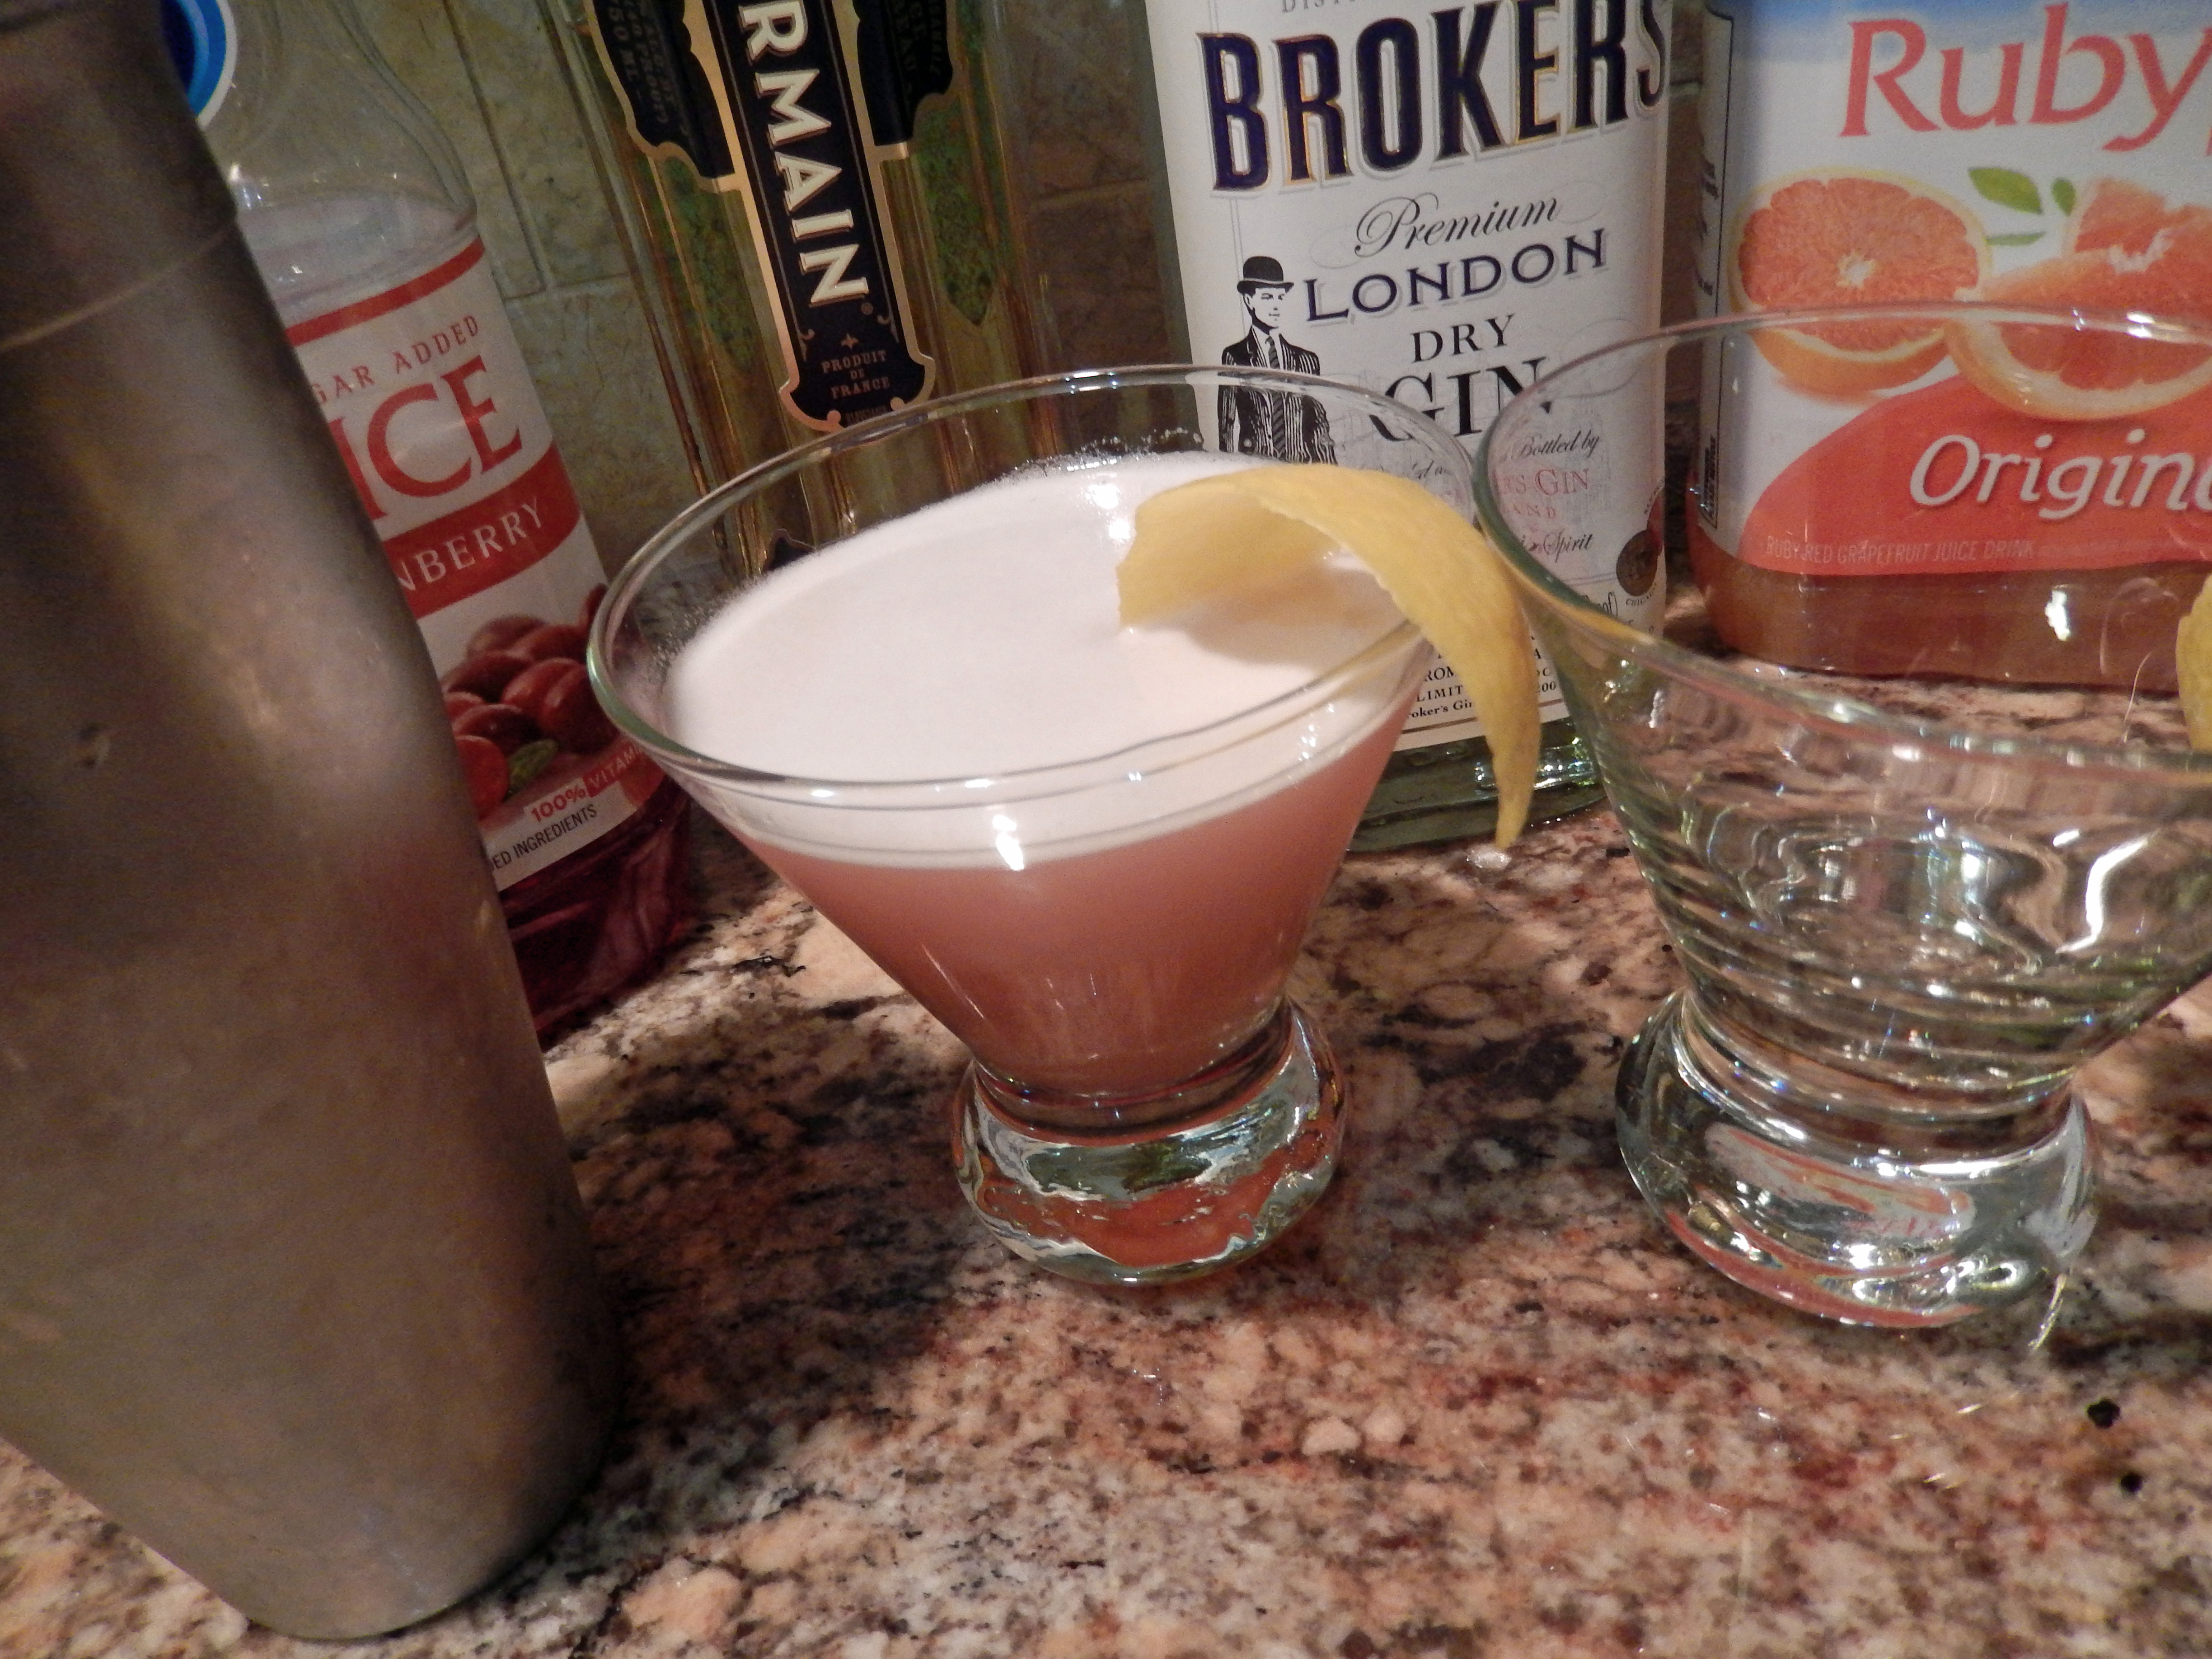 Shake the alcohol & juices together then serve!